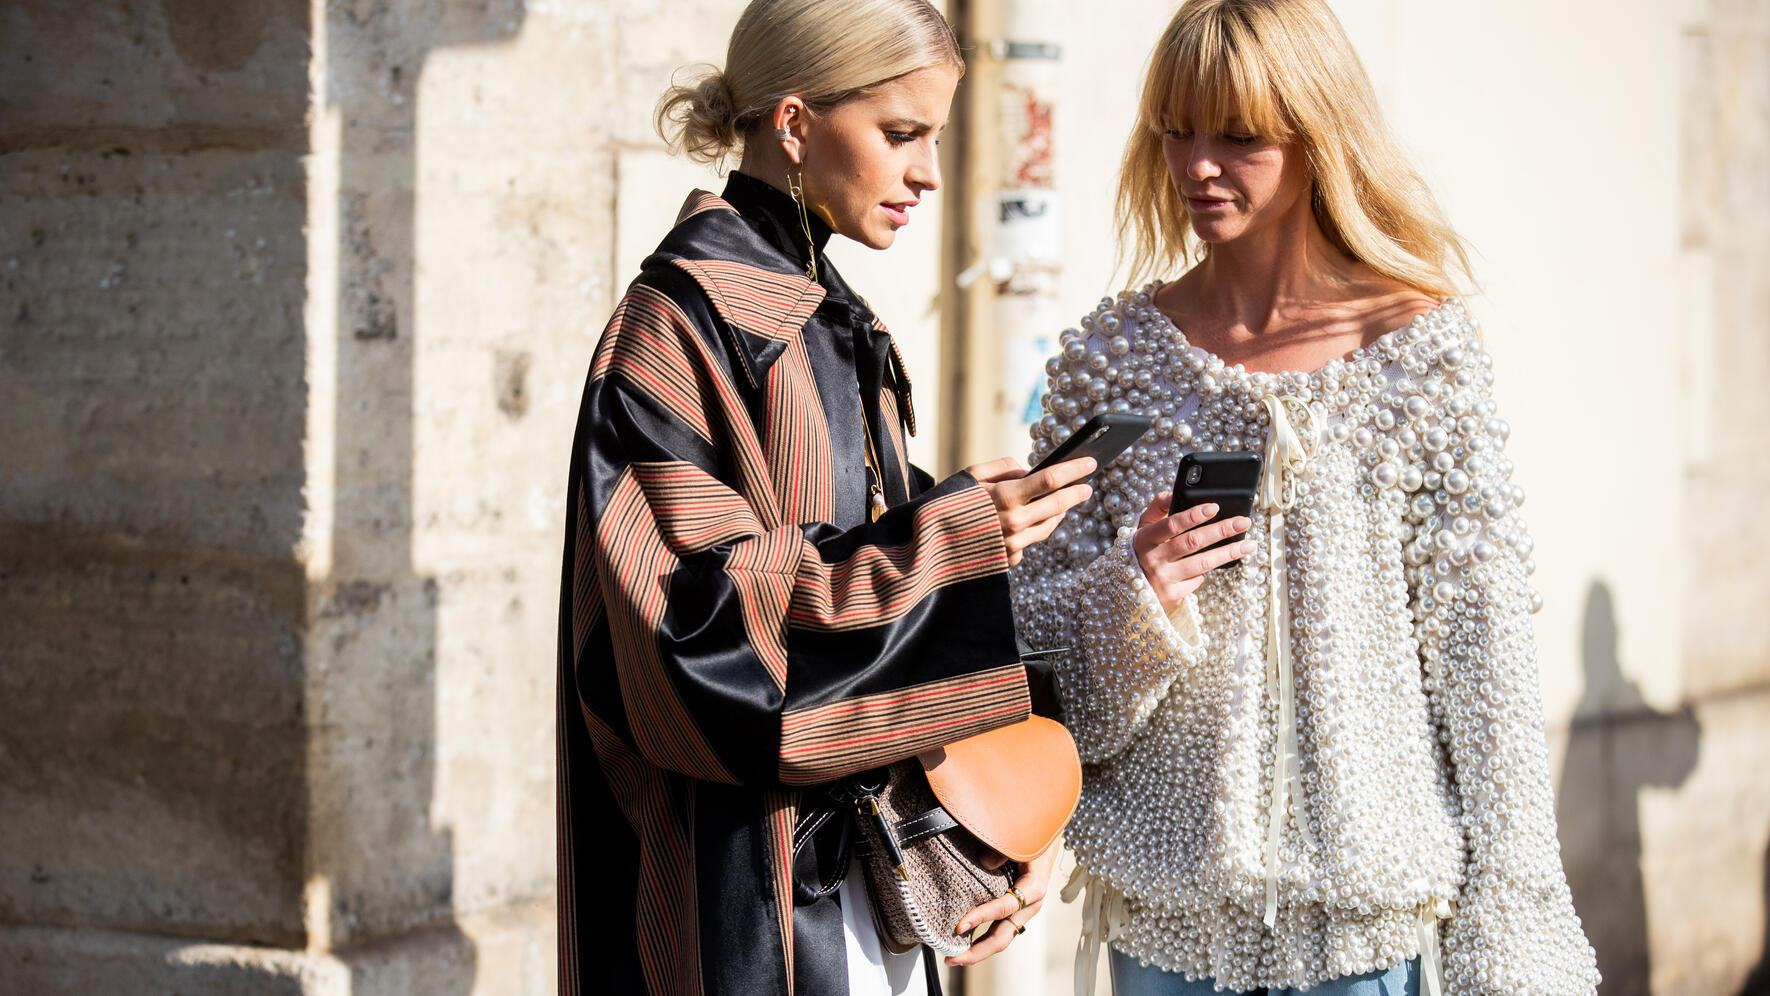 PARIS, FRANCE - SEPTEMBER 27: Caroline Caro Daur and Jeanette Friis Madsen on their smartphone seen outside Loewe during Paris Fashion Week Womenswear Spring Summer 2020 on September 27, 2019 in Paris, France. (Photo by Christian Vierig/Getty Images)